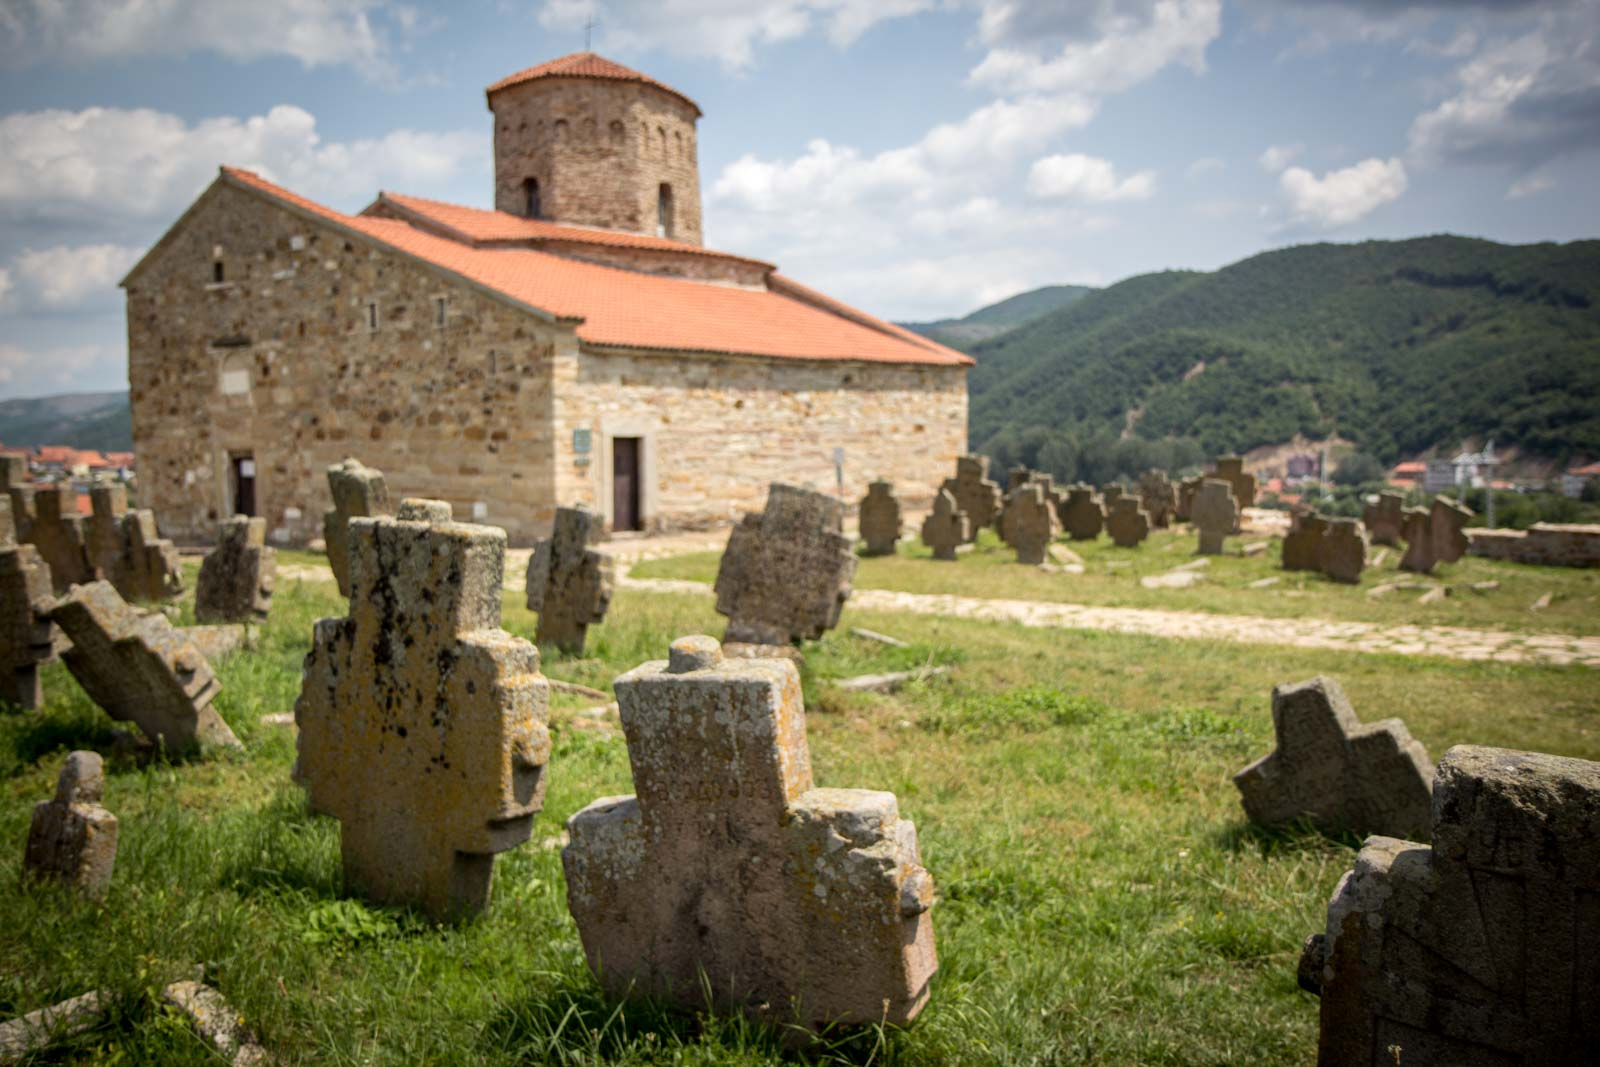 Church of St Peter, Novi Pazar, Serbia, stari ras